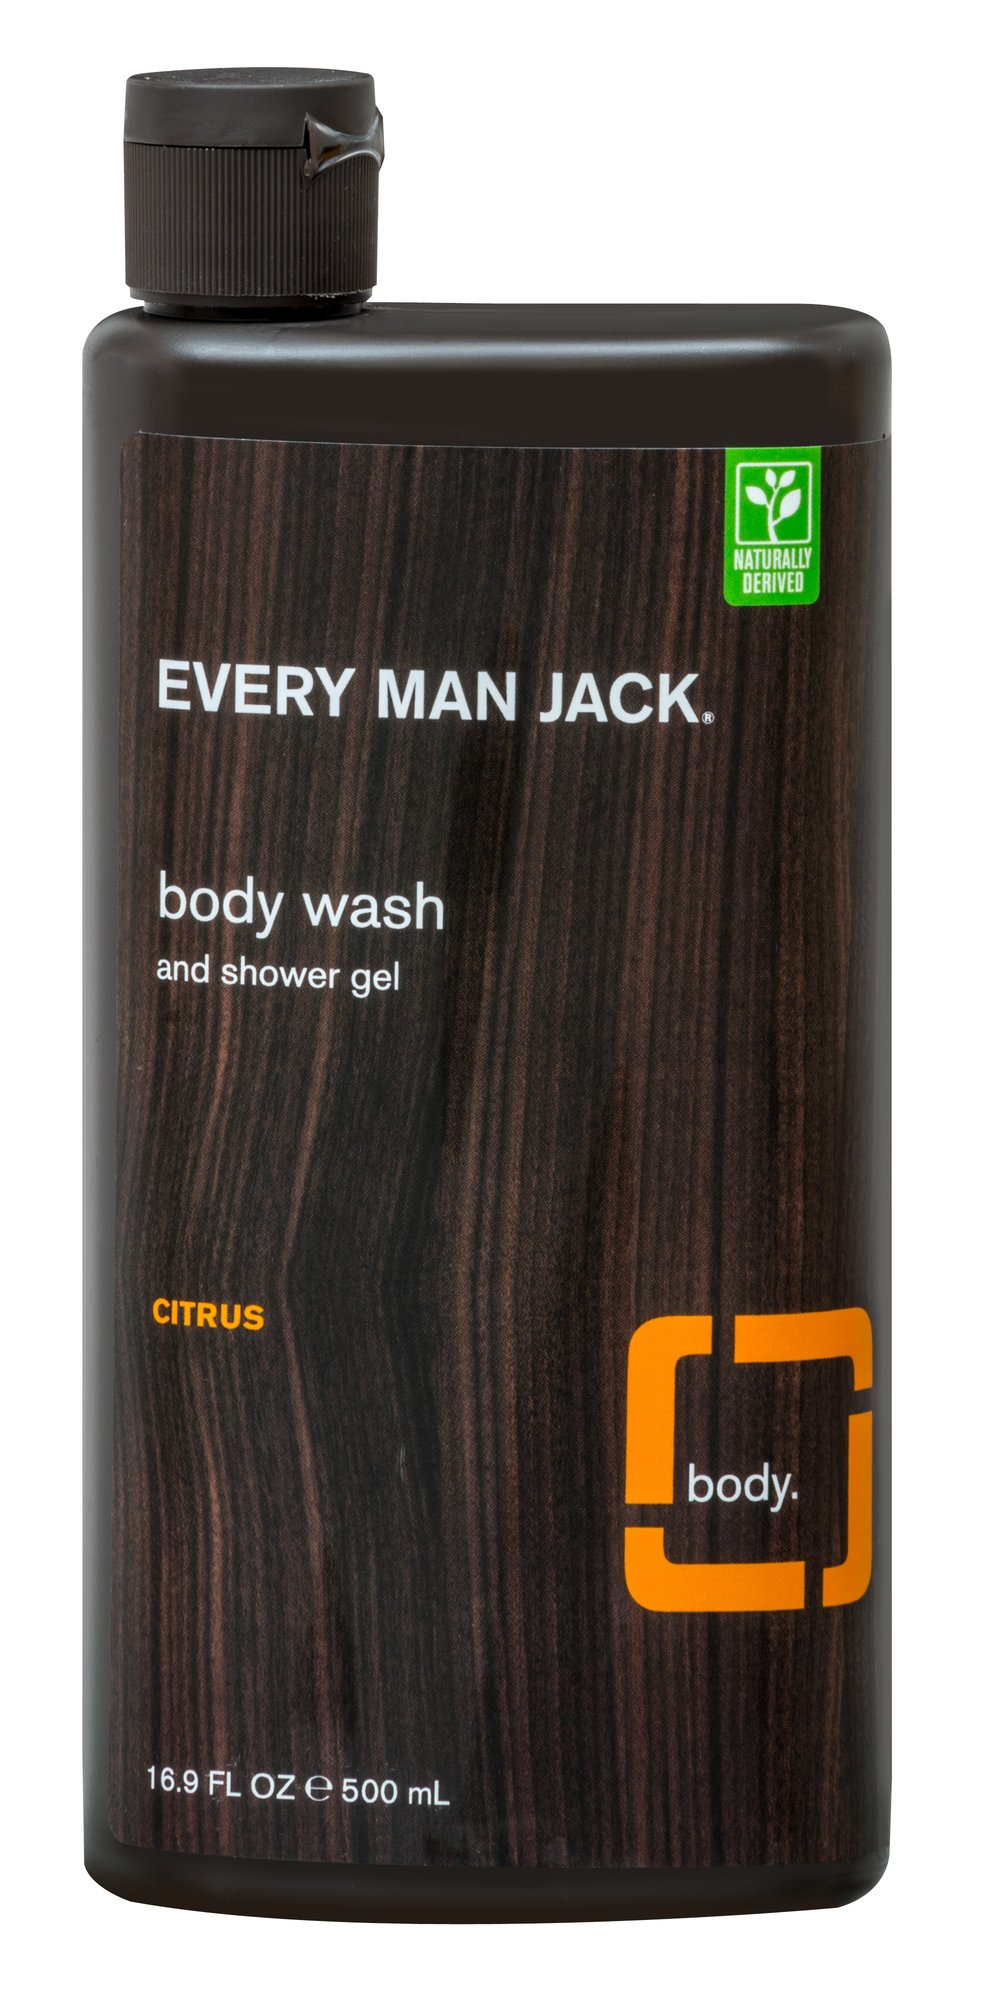 Every Man Jack® Citrus Scrub Body Wash & Shower Gel  16.9 fl oz Liquid  $5.99